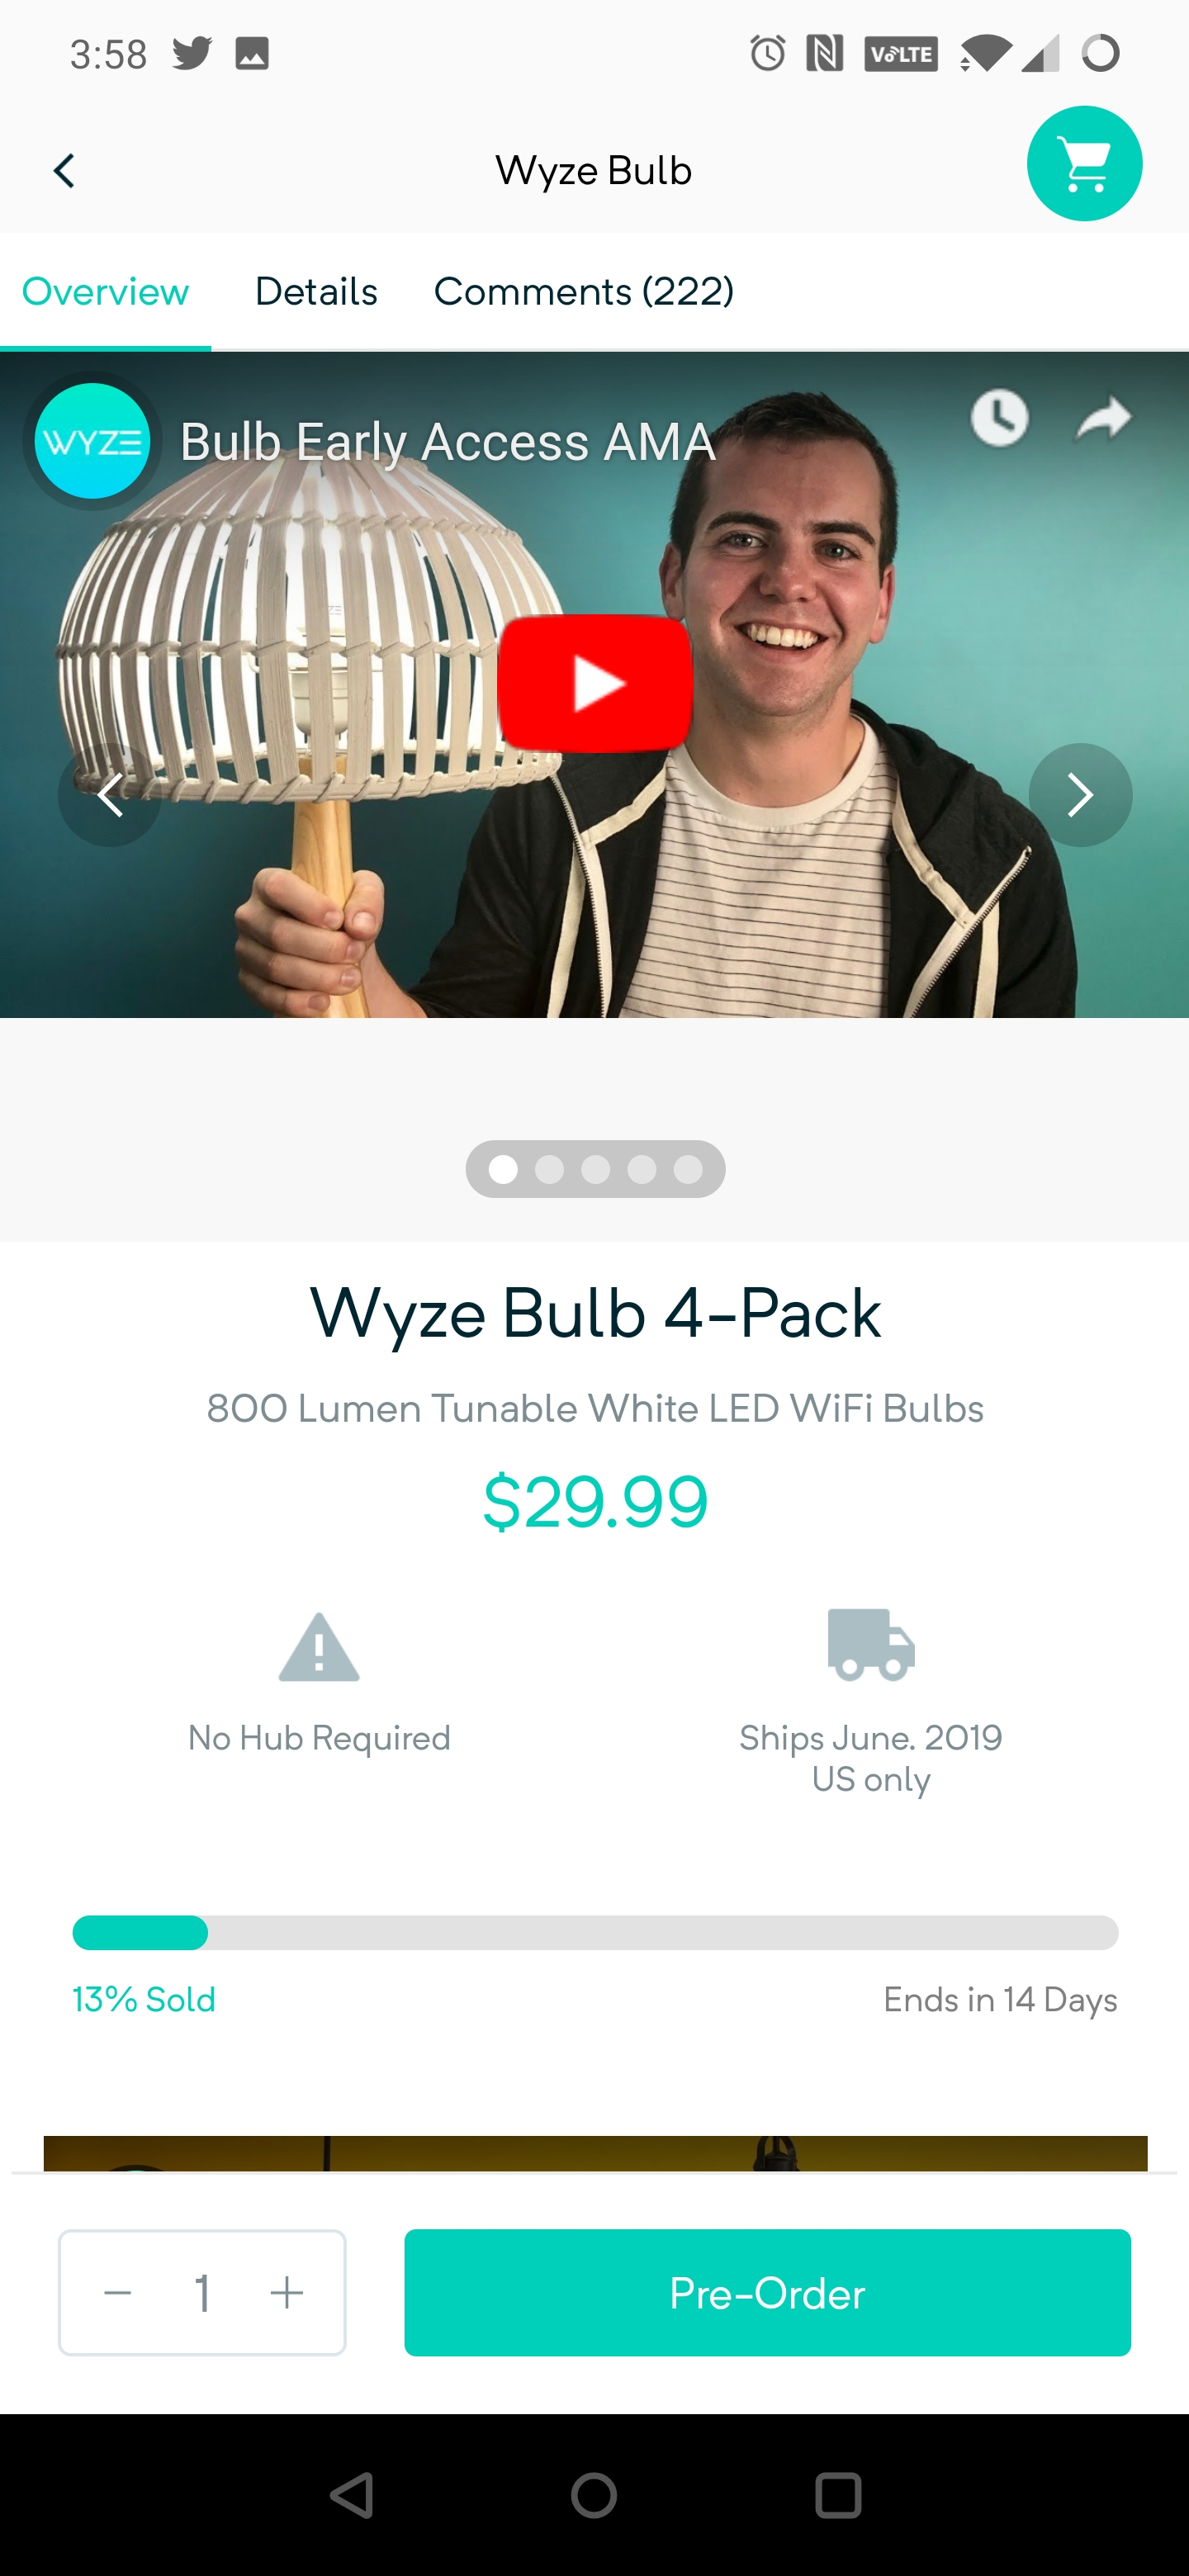 Wyze's upcoming smart light bulb is Assistant-compatible and